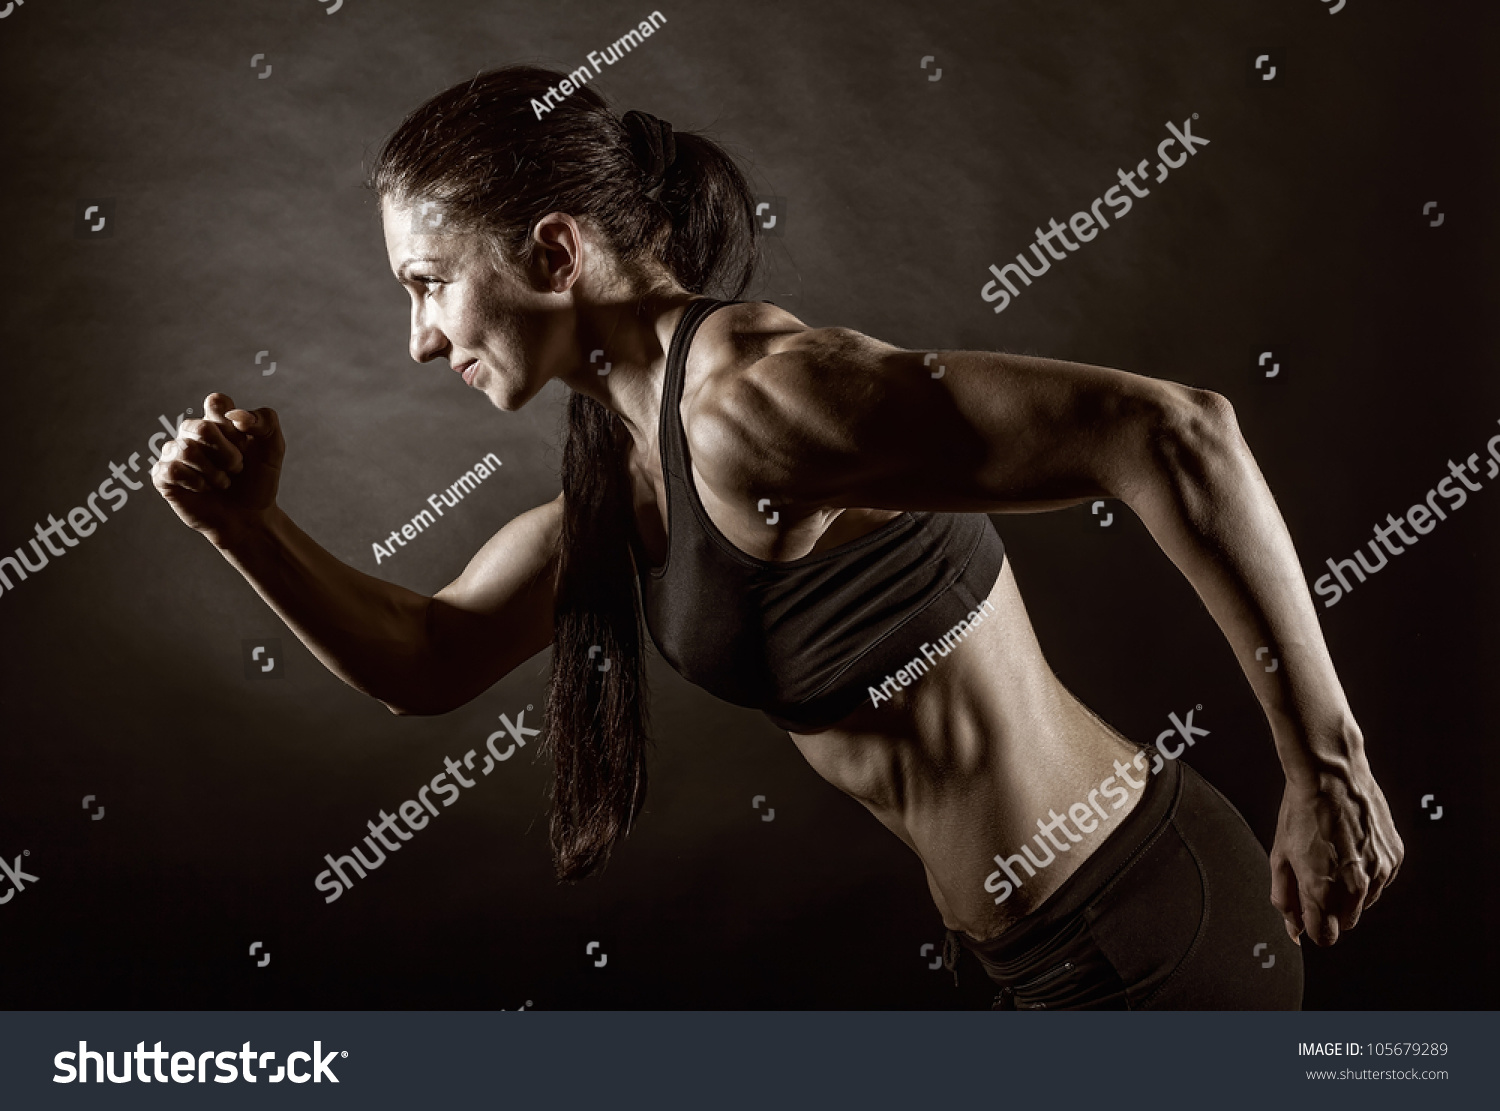 Running Jogging Music Download Woman Running On Dark Background Side Stock Photo